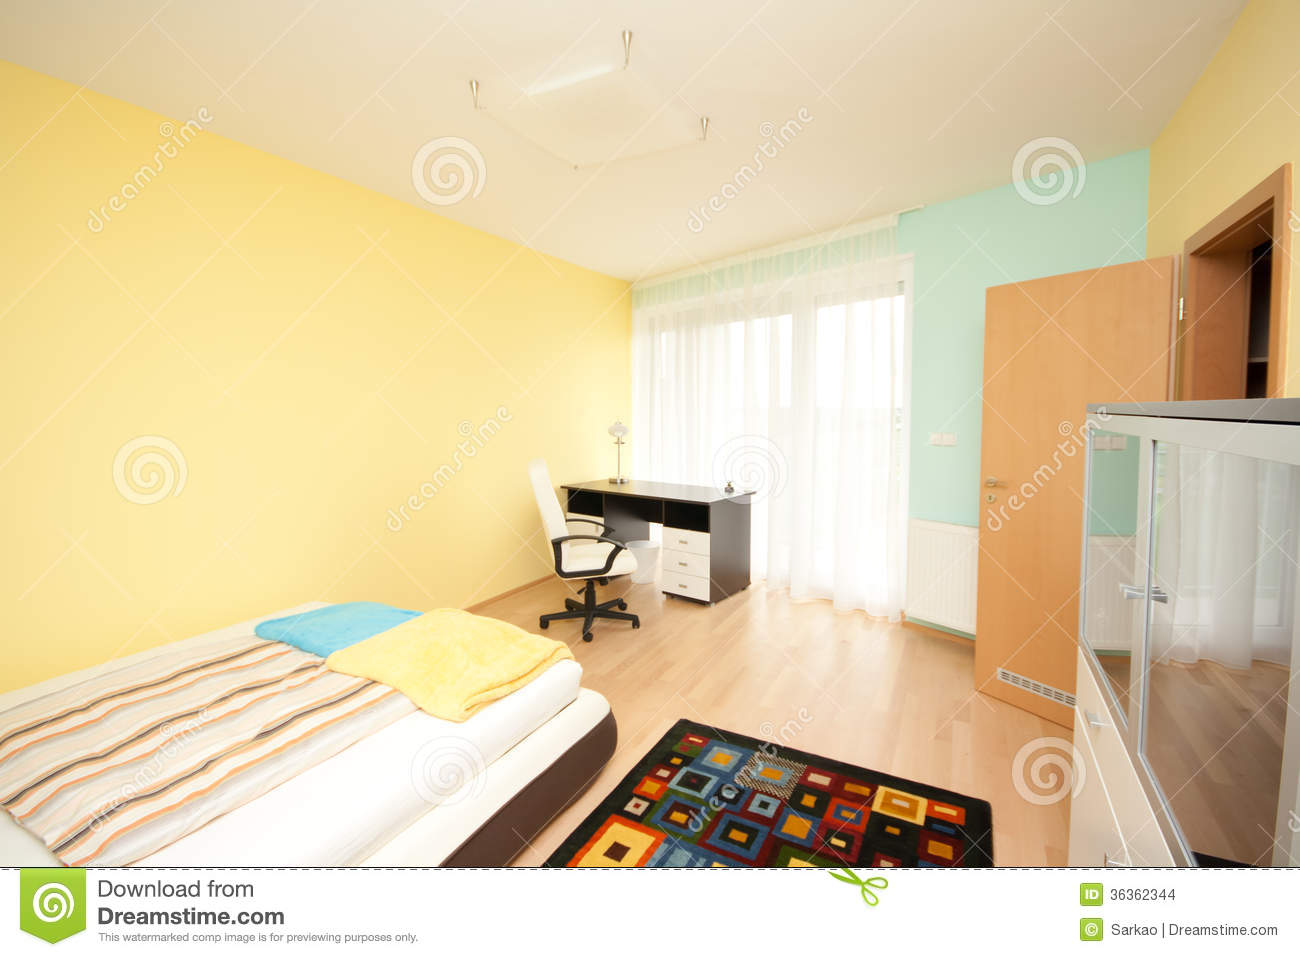 simple bedroom stock images image 36362344 12802 | simple bedroom pastel colors 36362344